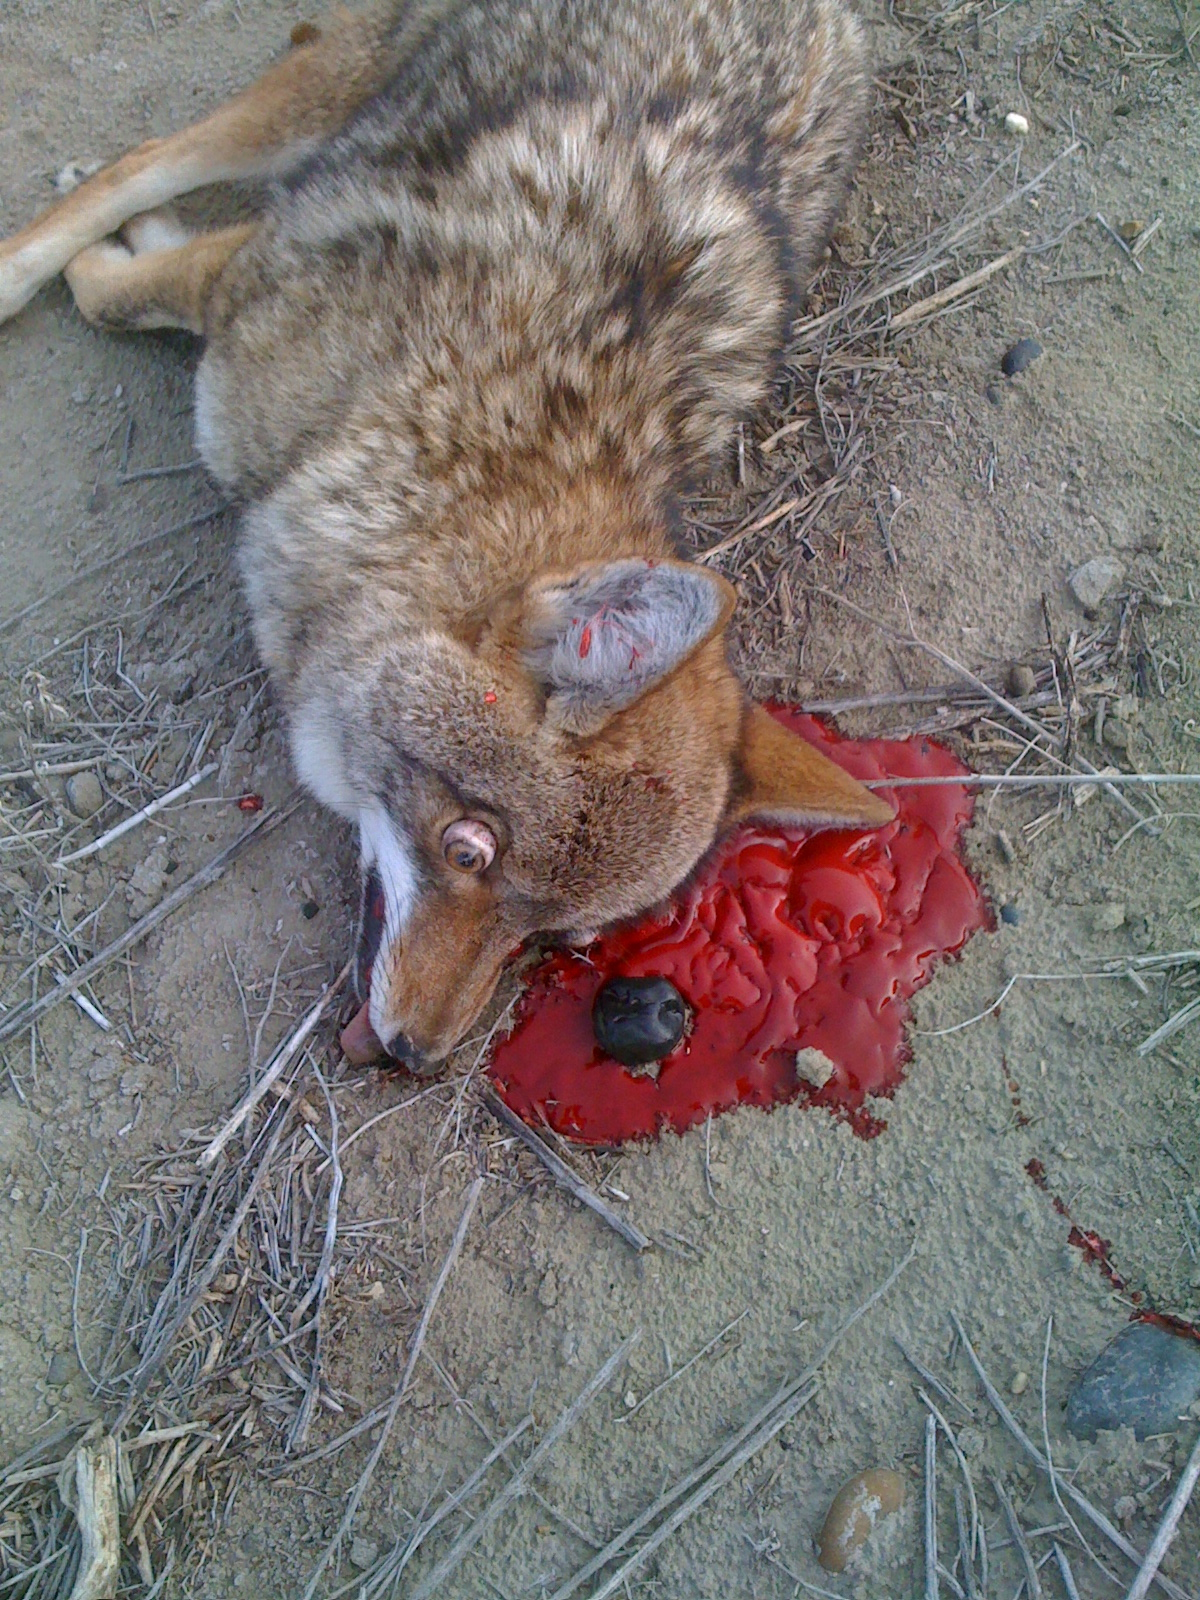 Best Coyote Kill Ever - Picture